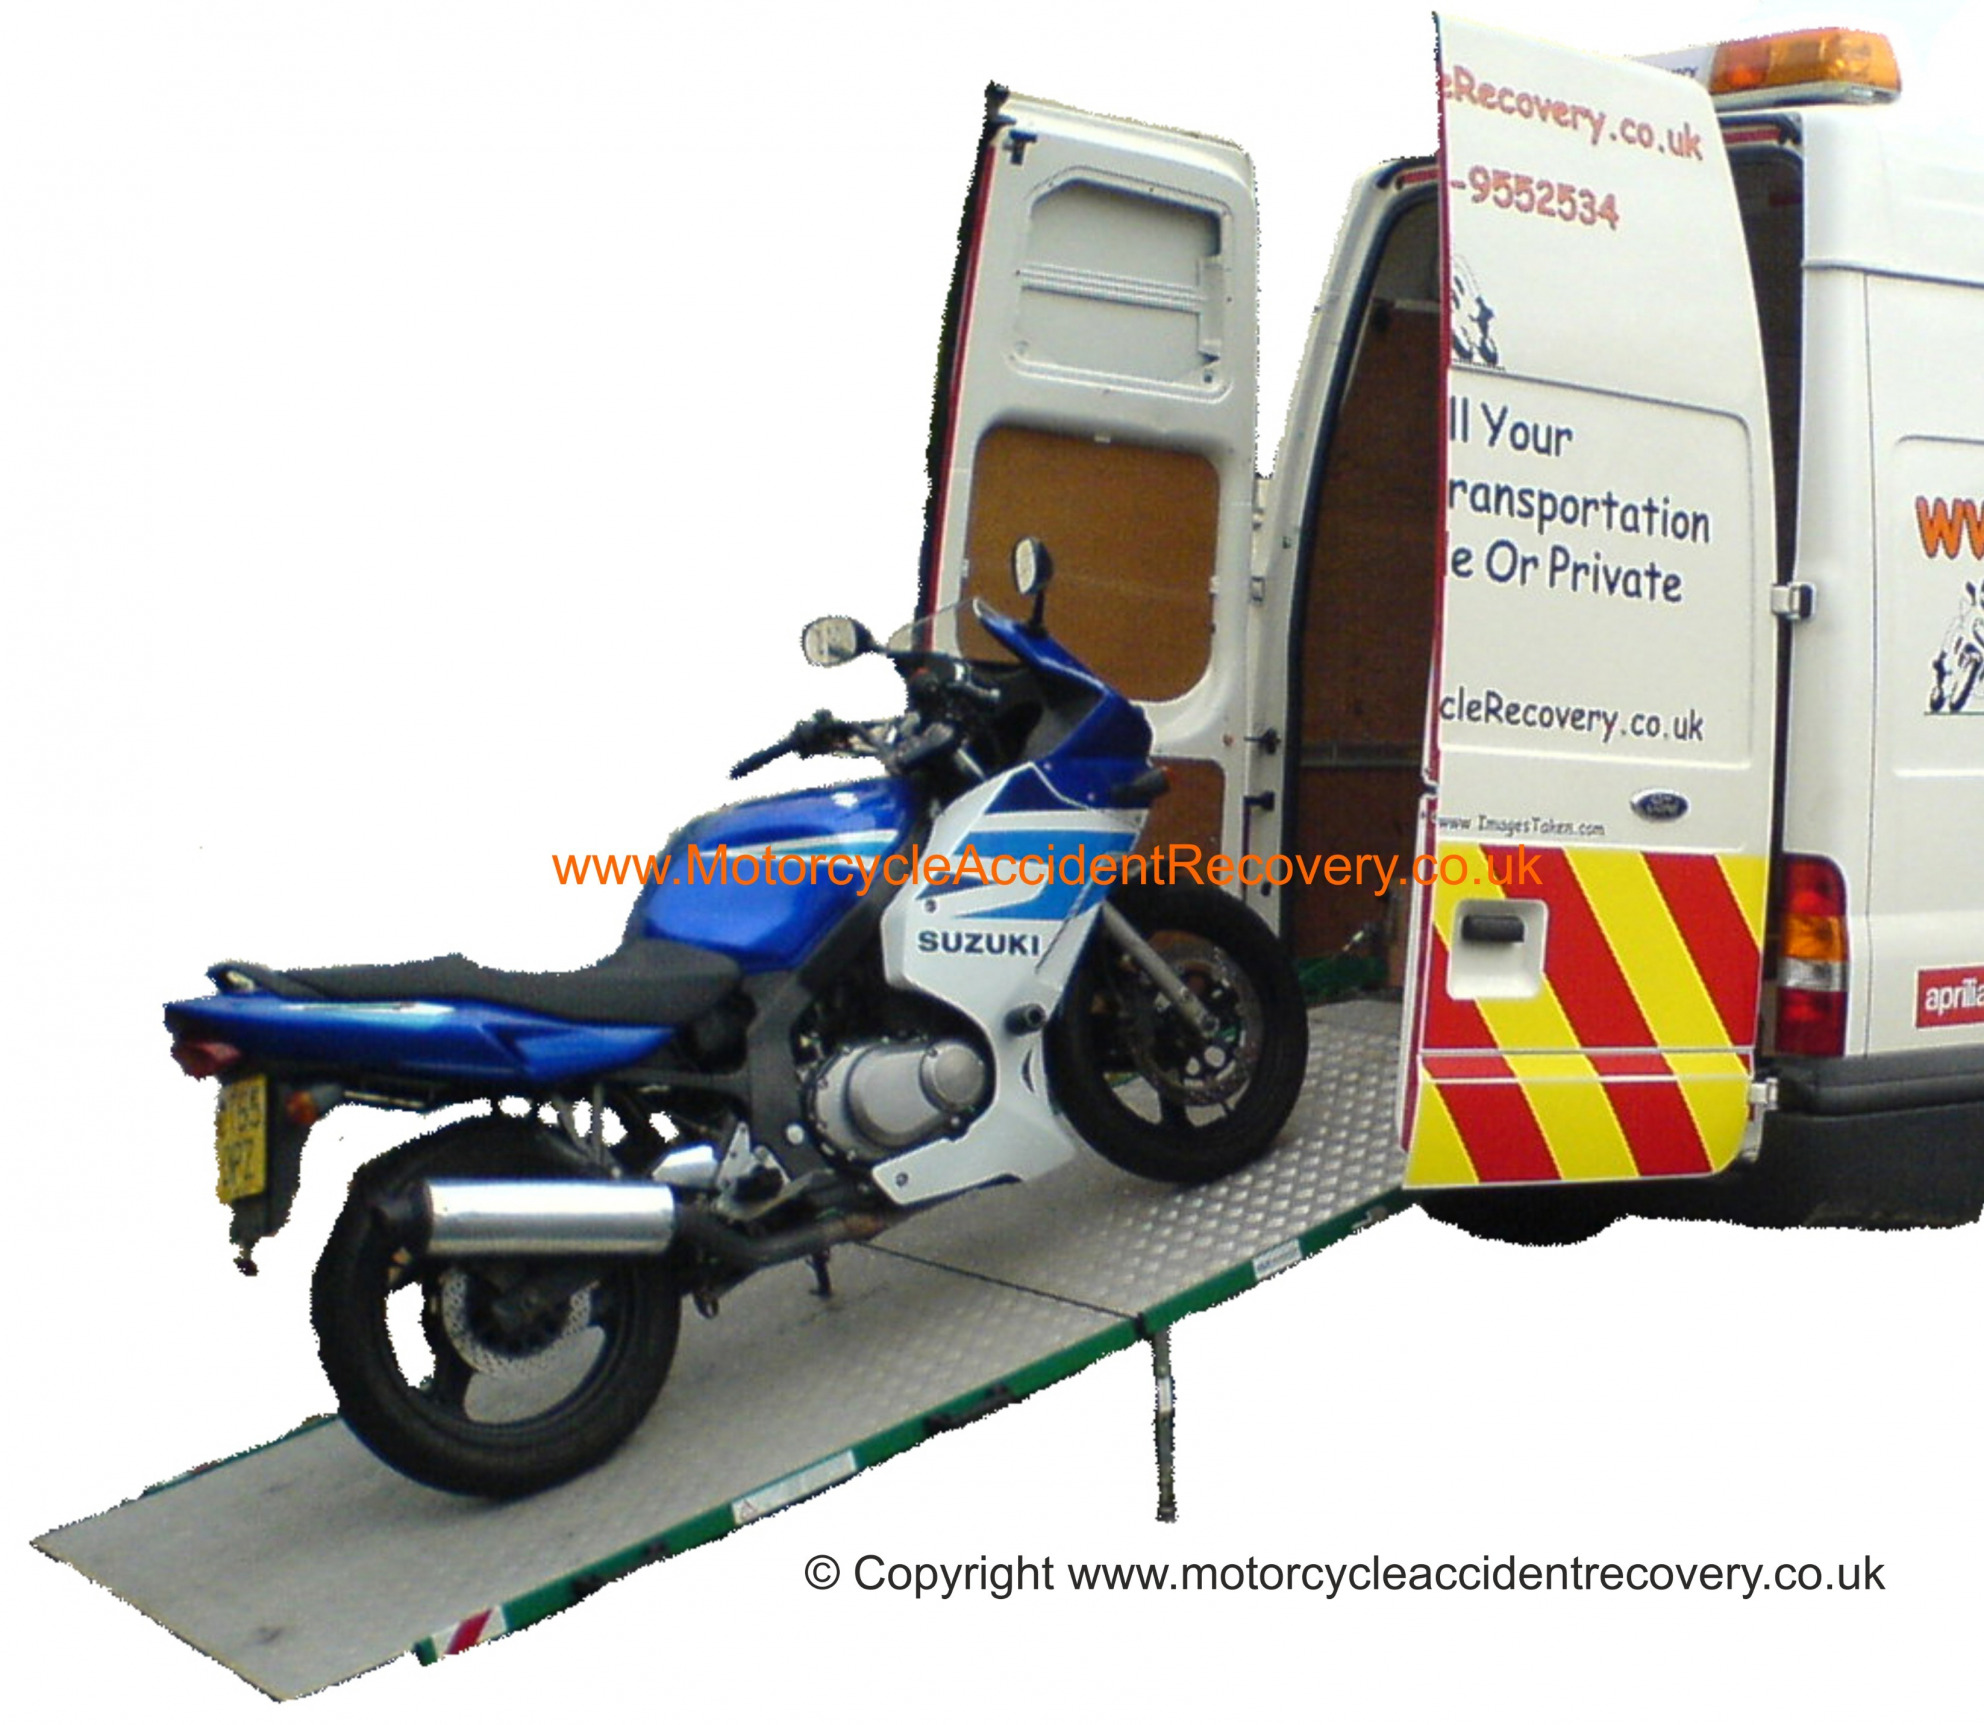 gallery/motorcycle accident recovery in lonon